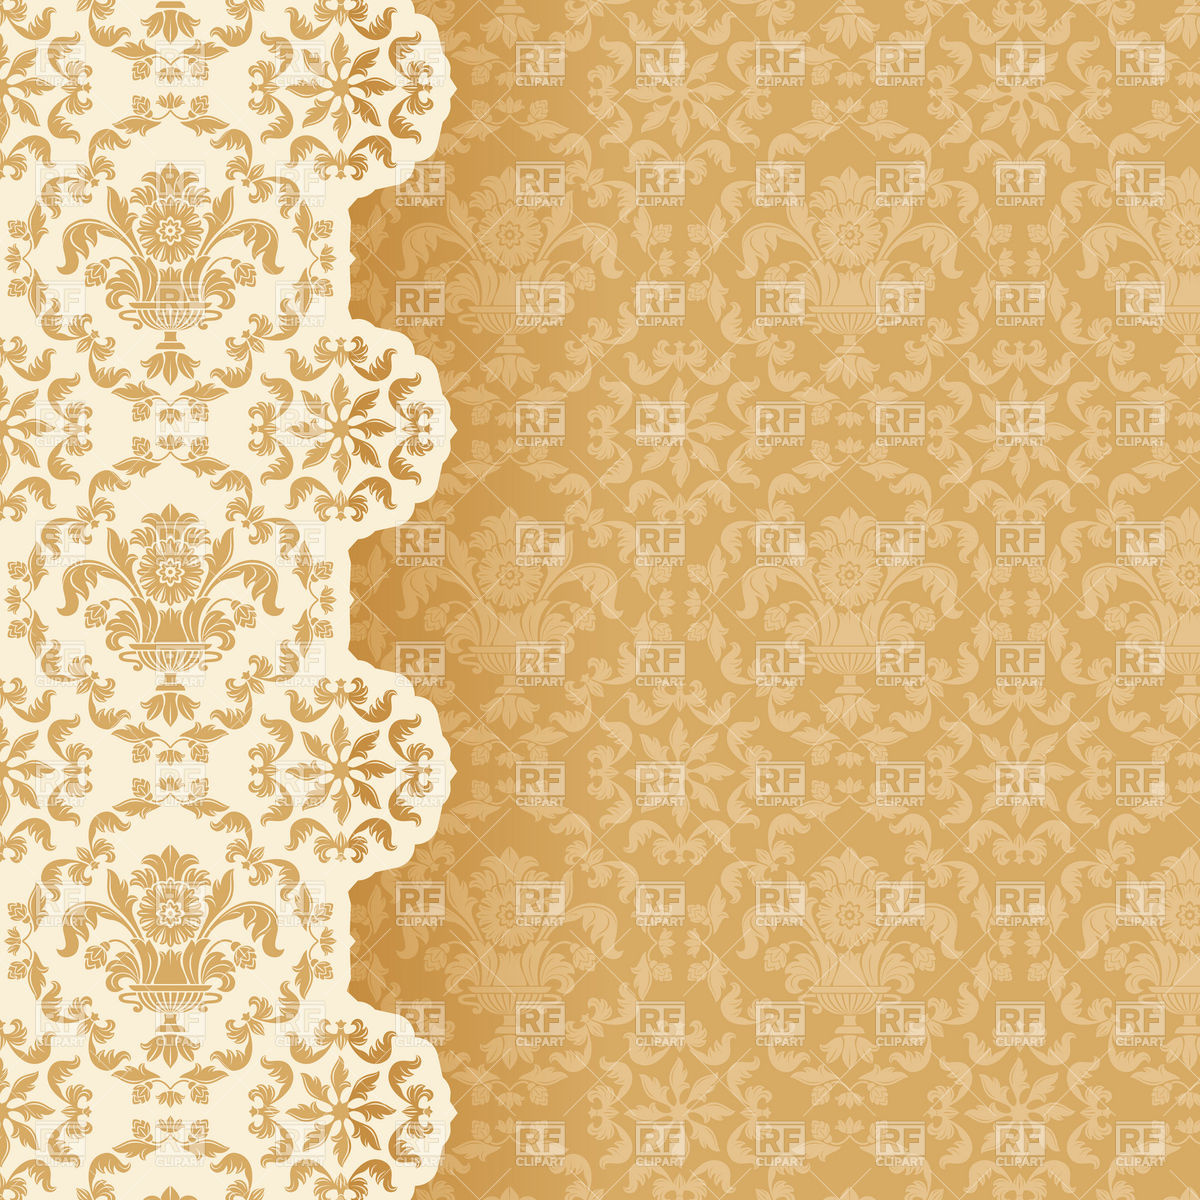 Victorian style wallpaper background 18880 Backgrounds Textures 1200x1200